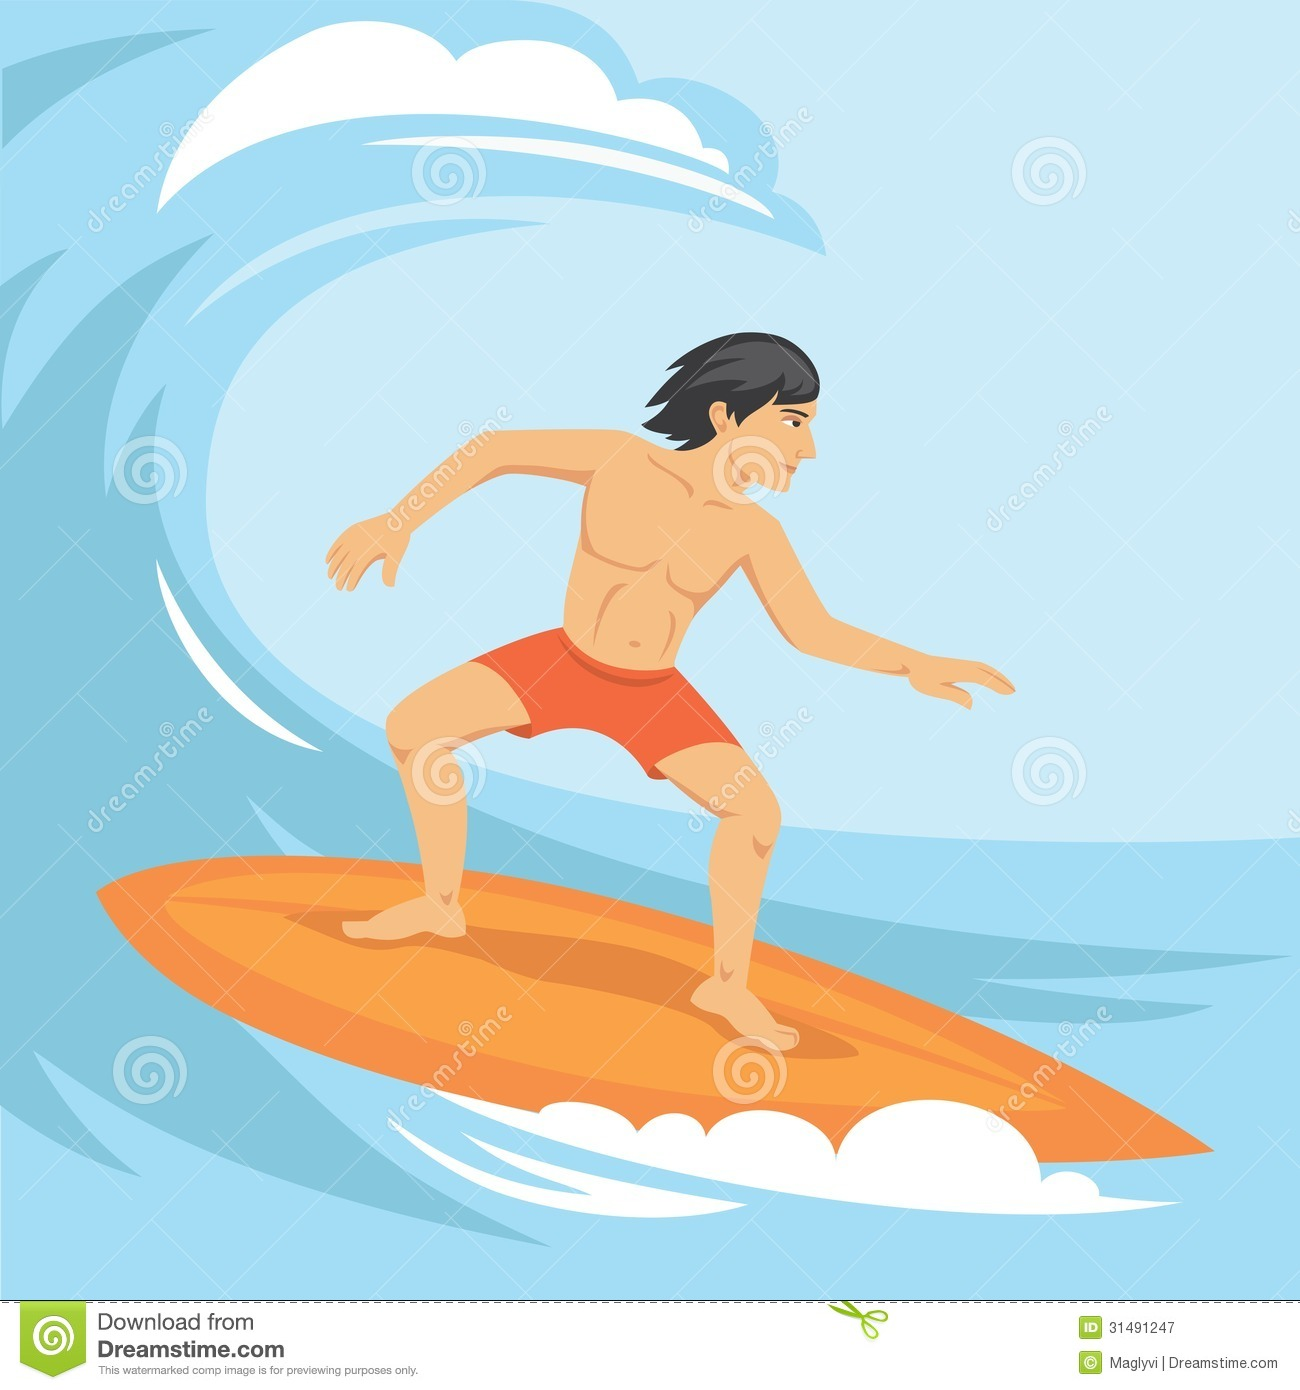 Surfing Royalty Free Stock Photography.